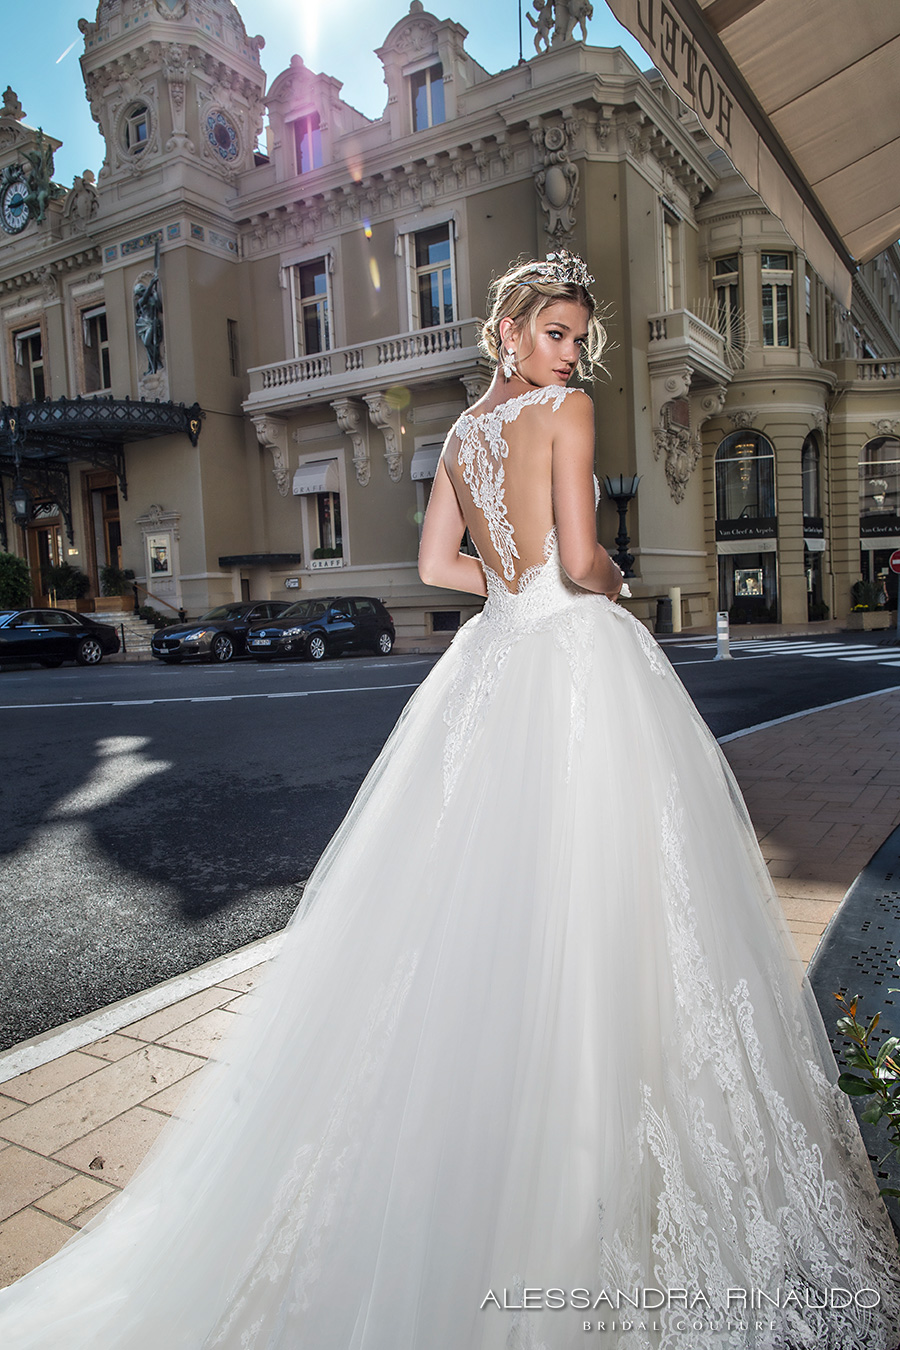 64aedf6932 alessandra rinaudo 2017 bridal cap sleeves lace strap sweetheart neckline  heavily embellished bodice princess ball gown